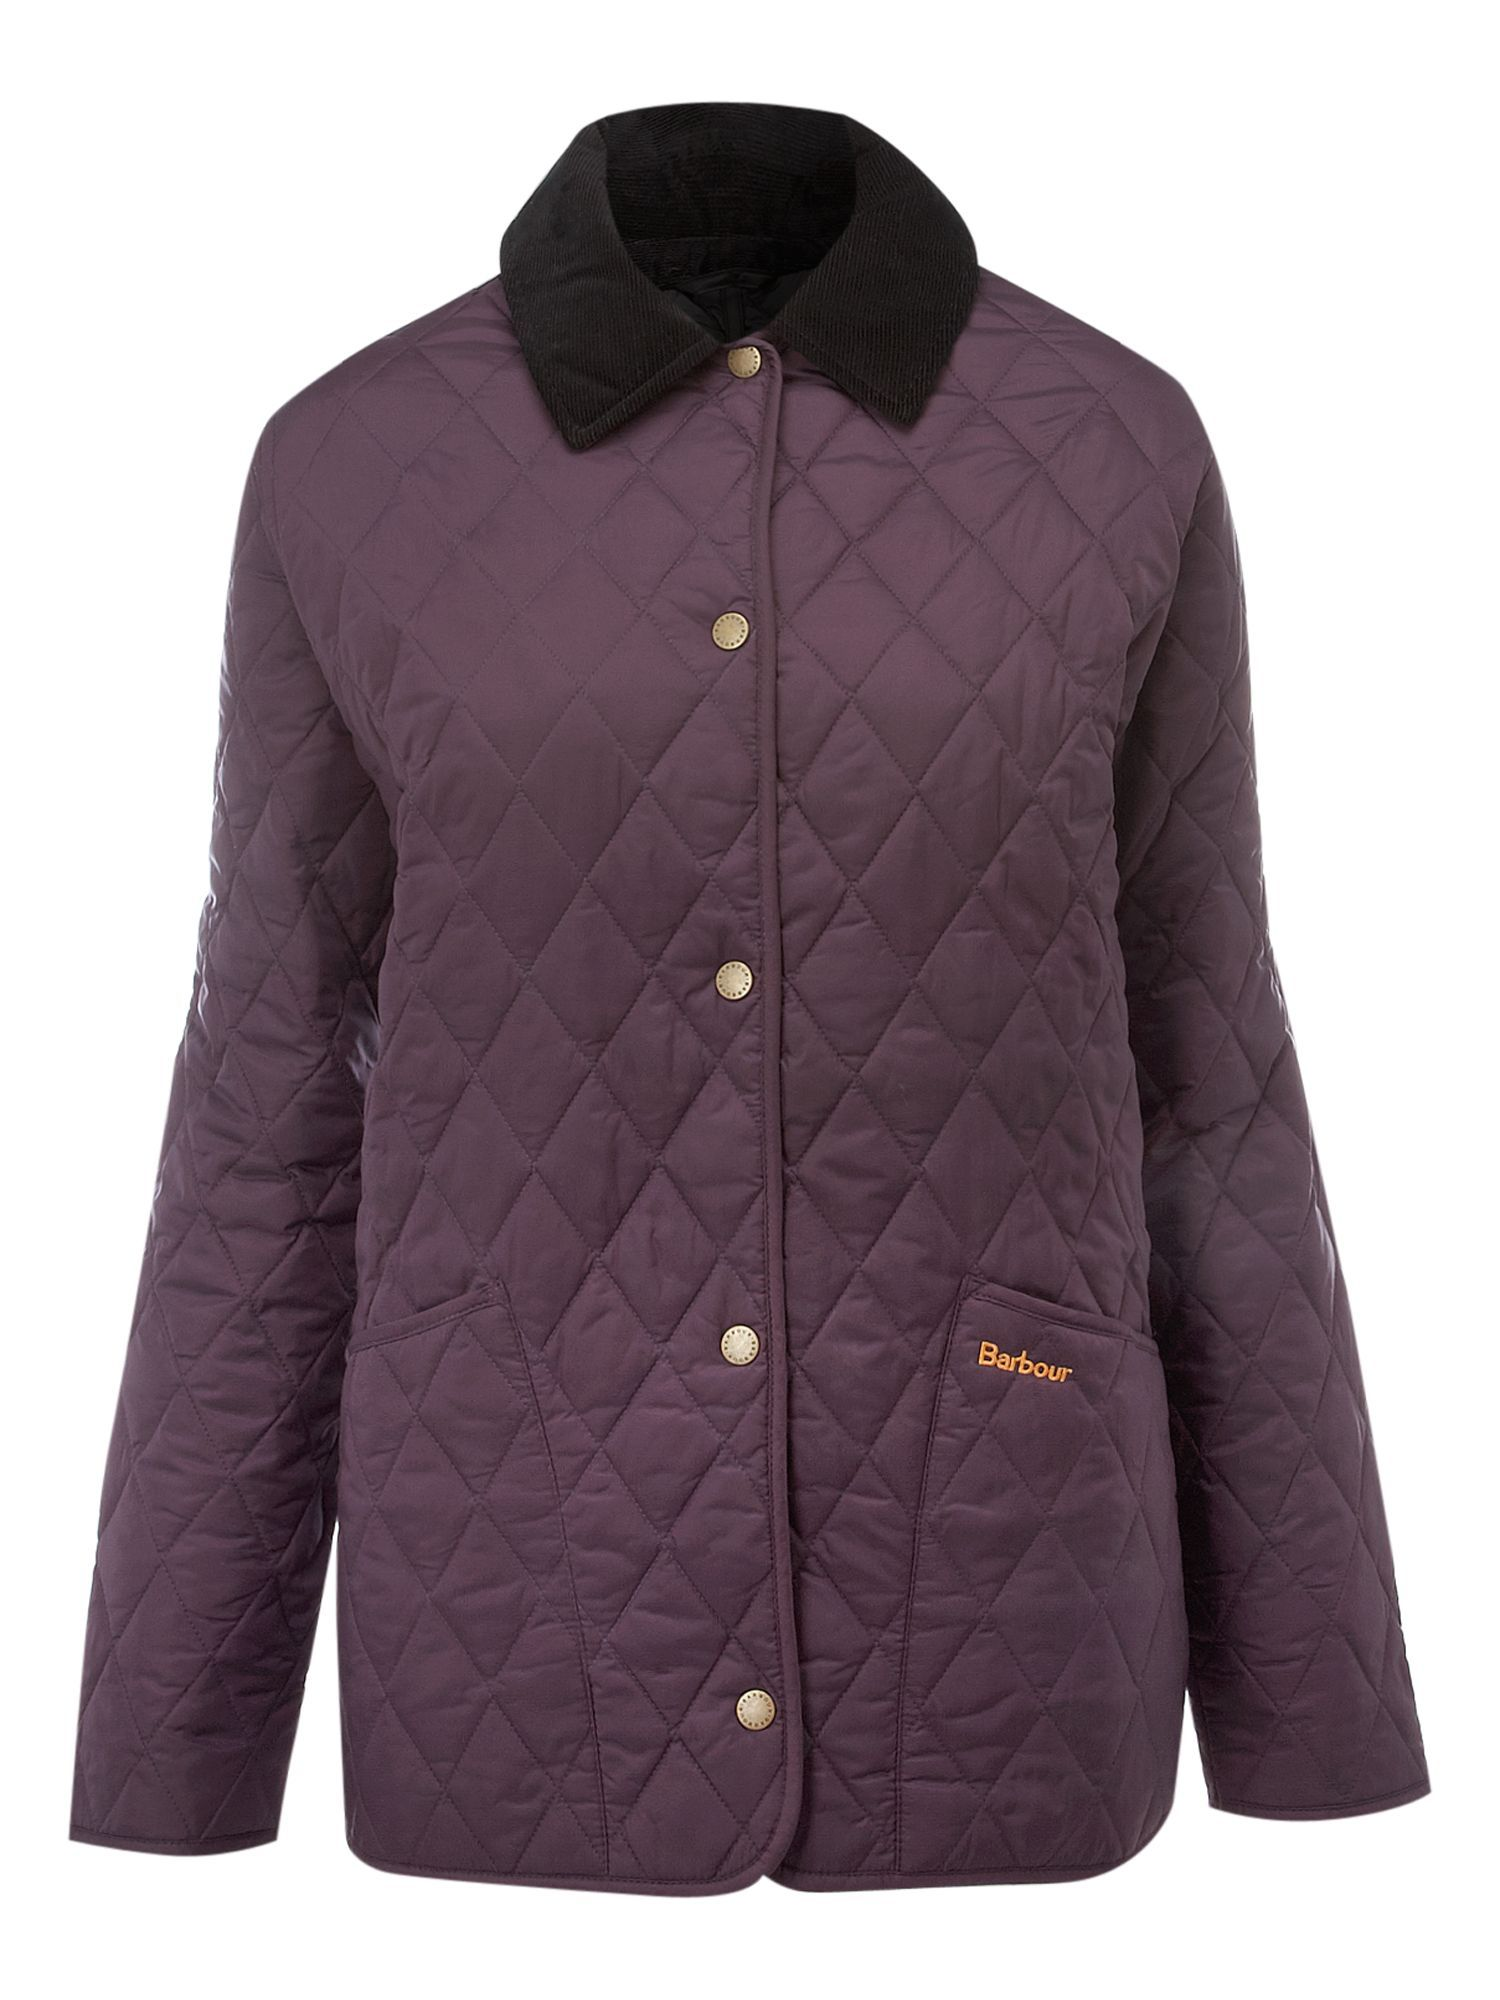 Women's Shaped Liddesdale Quilted Jacket, Purple - pattern: plain; length: standard; collar: round collar/collarless; style: quilted; hip detail: front pockets at hip; fit: slim fit; predominant colour: aubergine; occasions: casual; fibres: viscose/rayon - 100%; sleeve length: long sleeve; sleeve style: standard